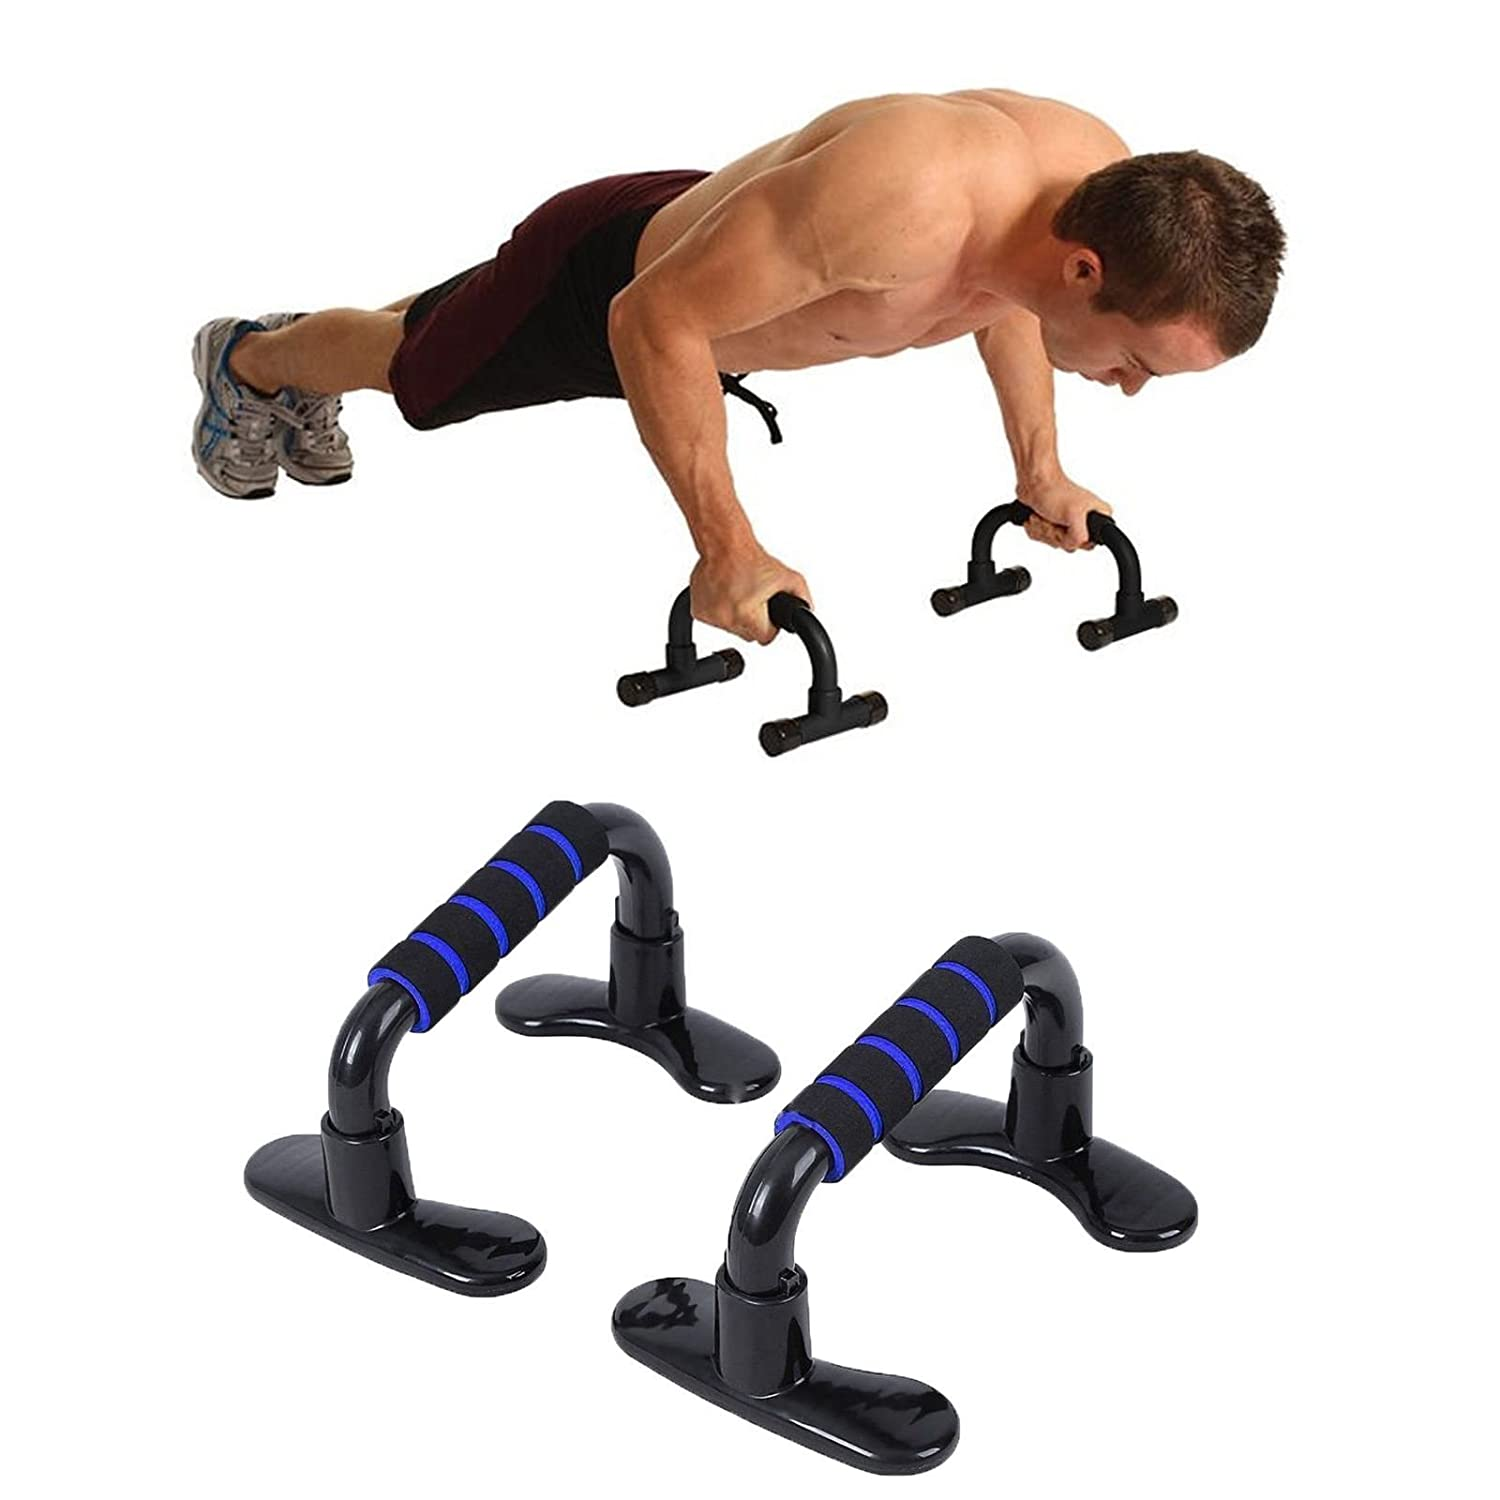 Pairs Push Up Bars Pull Stand Handle Exercise Training Pushup Chest Arms Tools